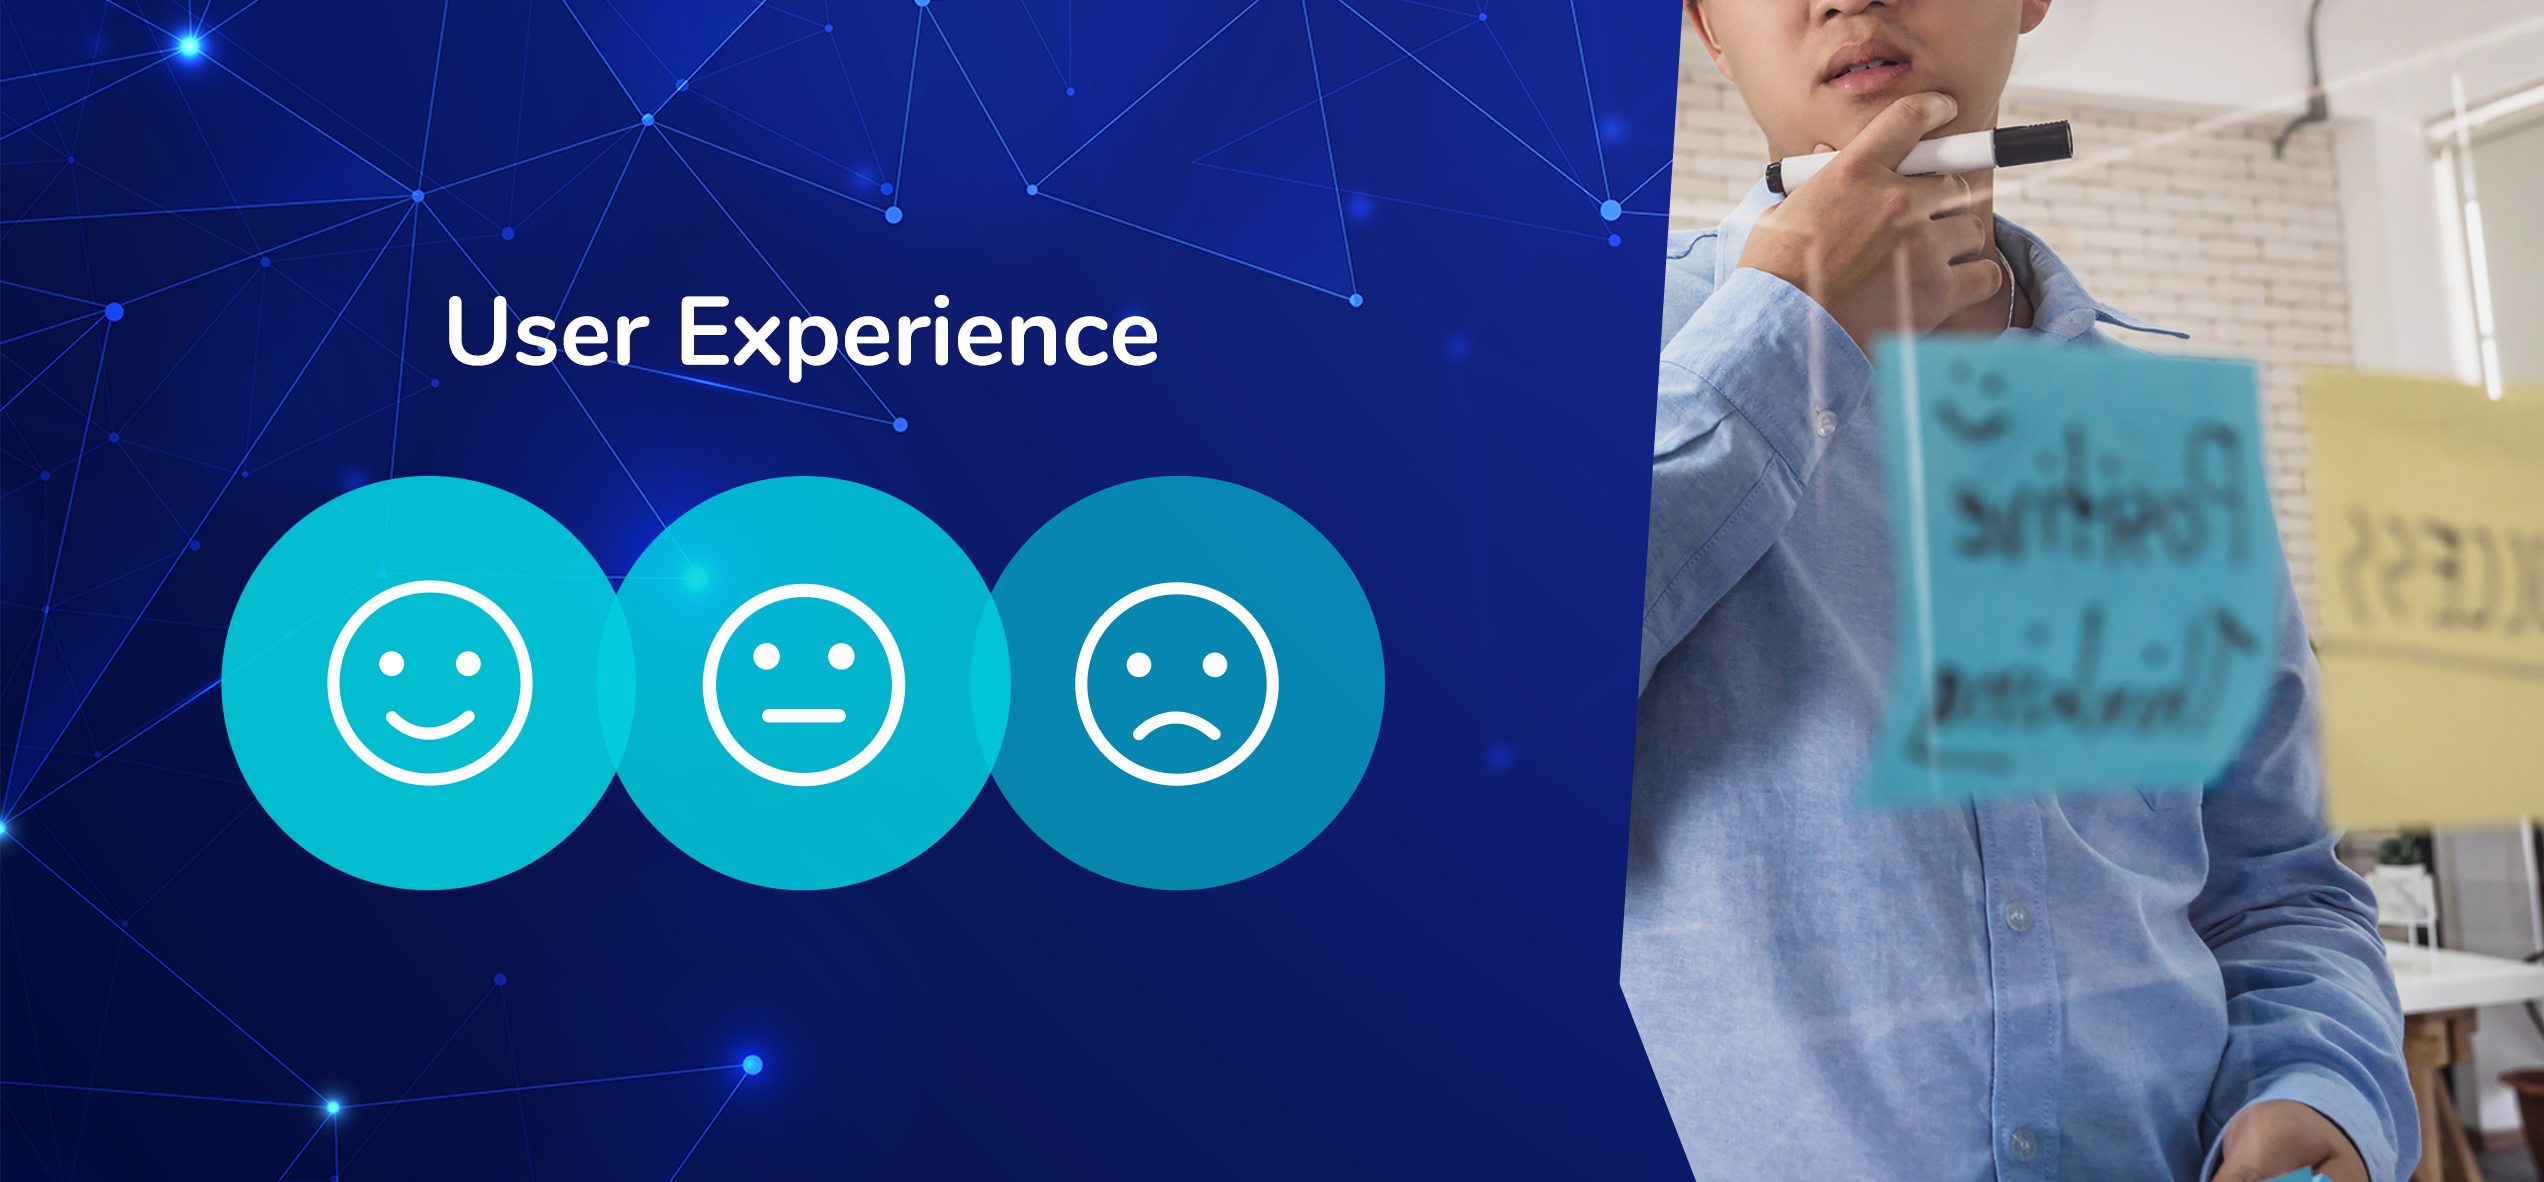 Digital design user experience and user interface - UX and UI